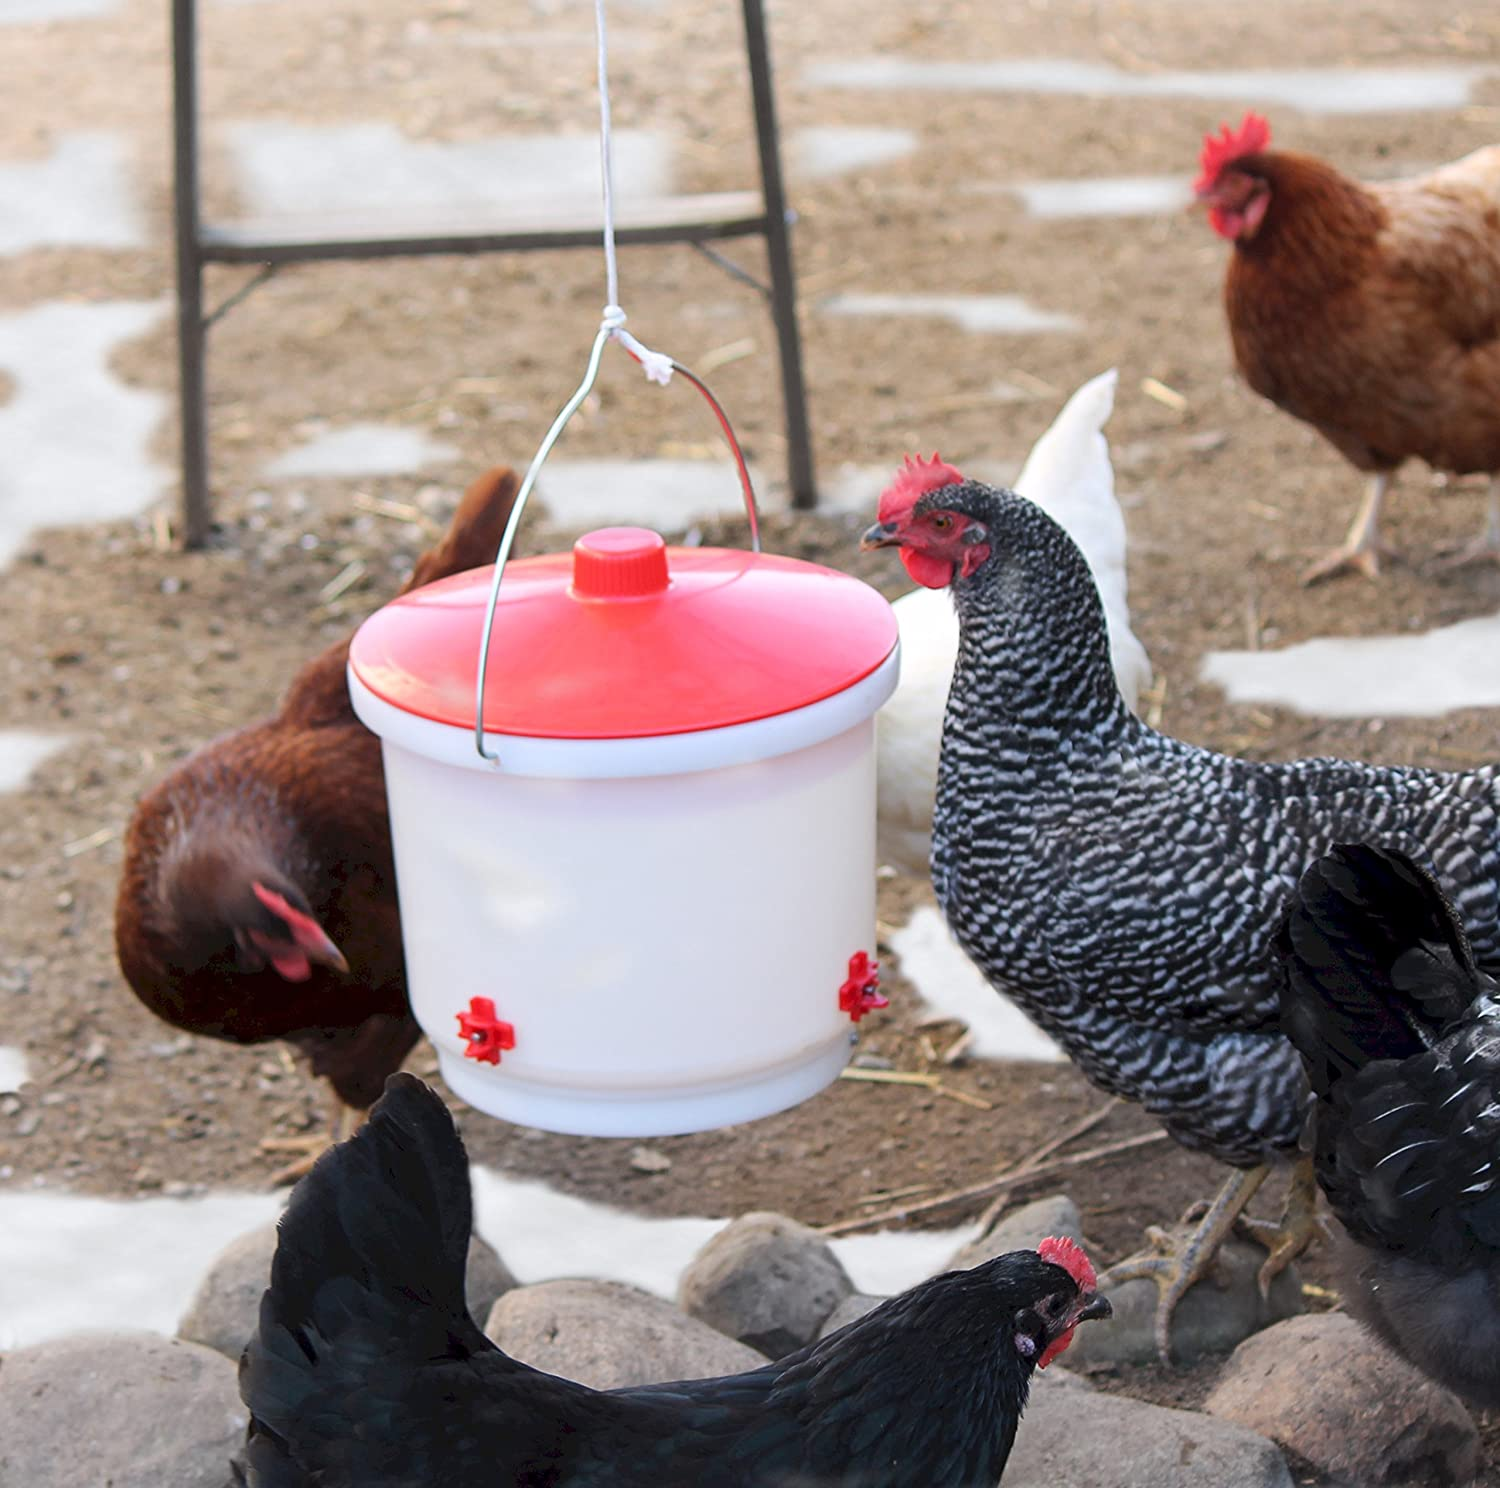 Nesting Base Poultry Chickens Roosters Hens Waterer Durable Red Fits 1 Gallon